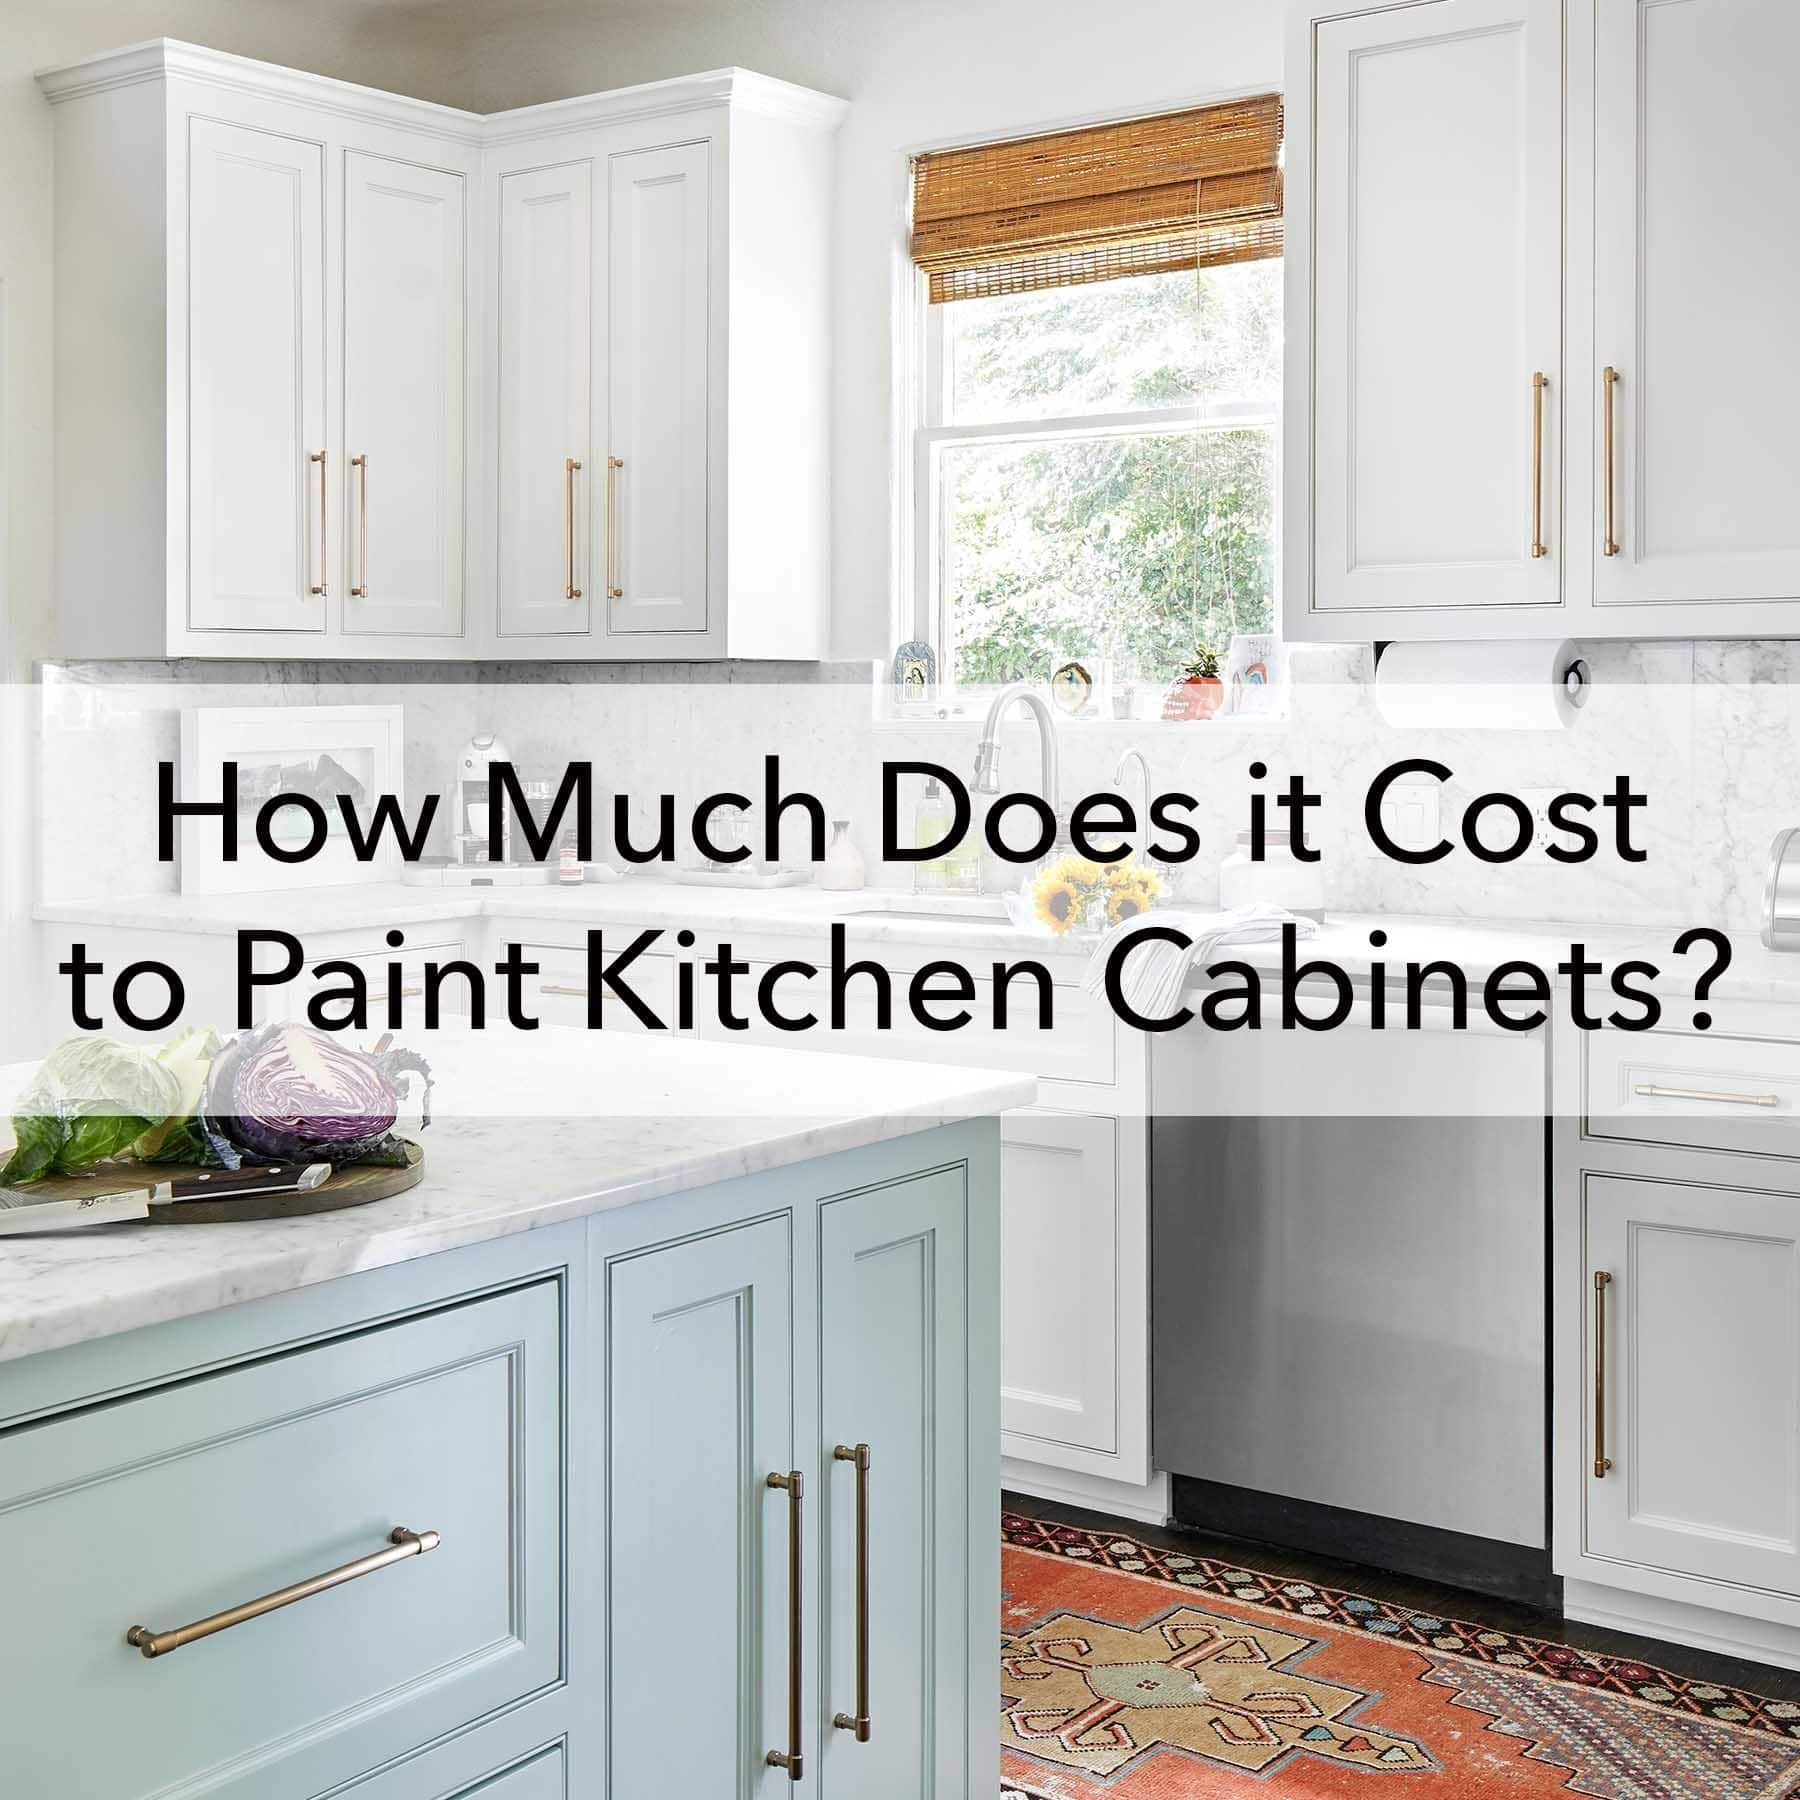 How Much Does It Cost to Paint Kitchen (With